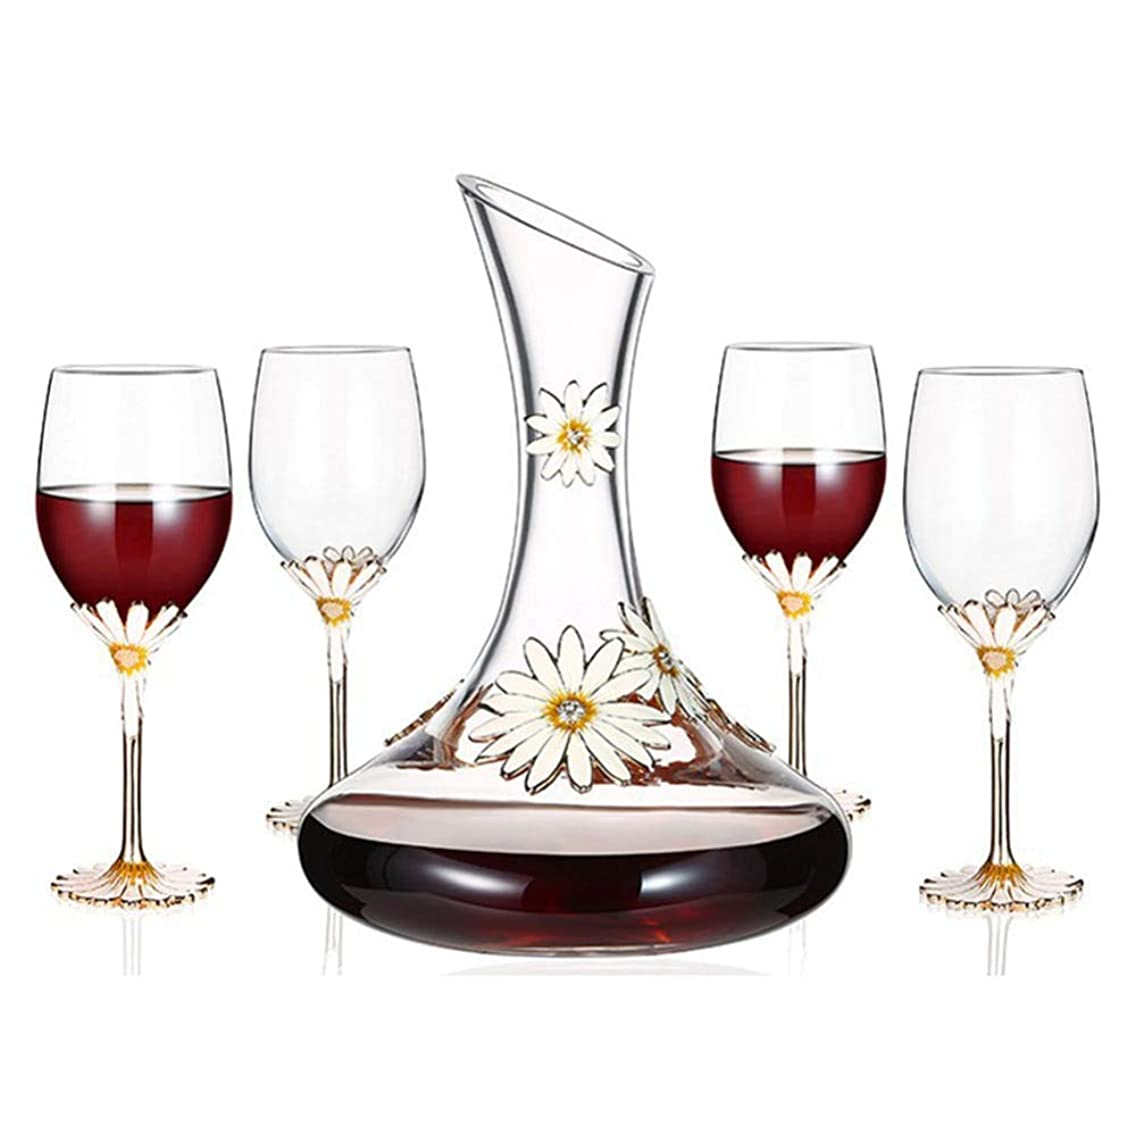 1.5L Wine Decanter with 4 Red Wine Glasses (350ML) Set - 100% Hand Blown Lead-free Crystal Glass, Red Wine Carafe, Whiskey bottle, Wine Gifts, Wine Accessories - Best for Home Use and Party or Bar